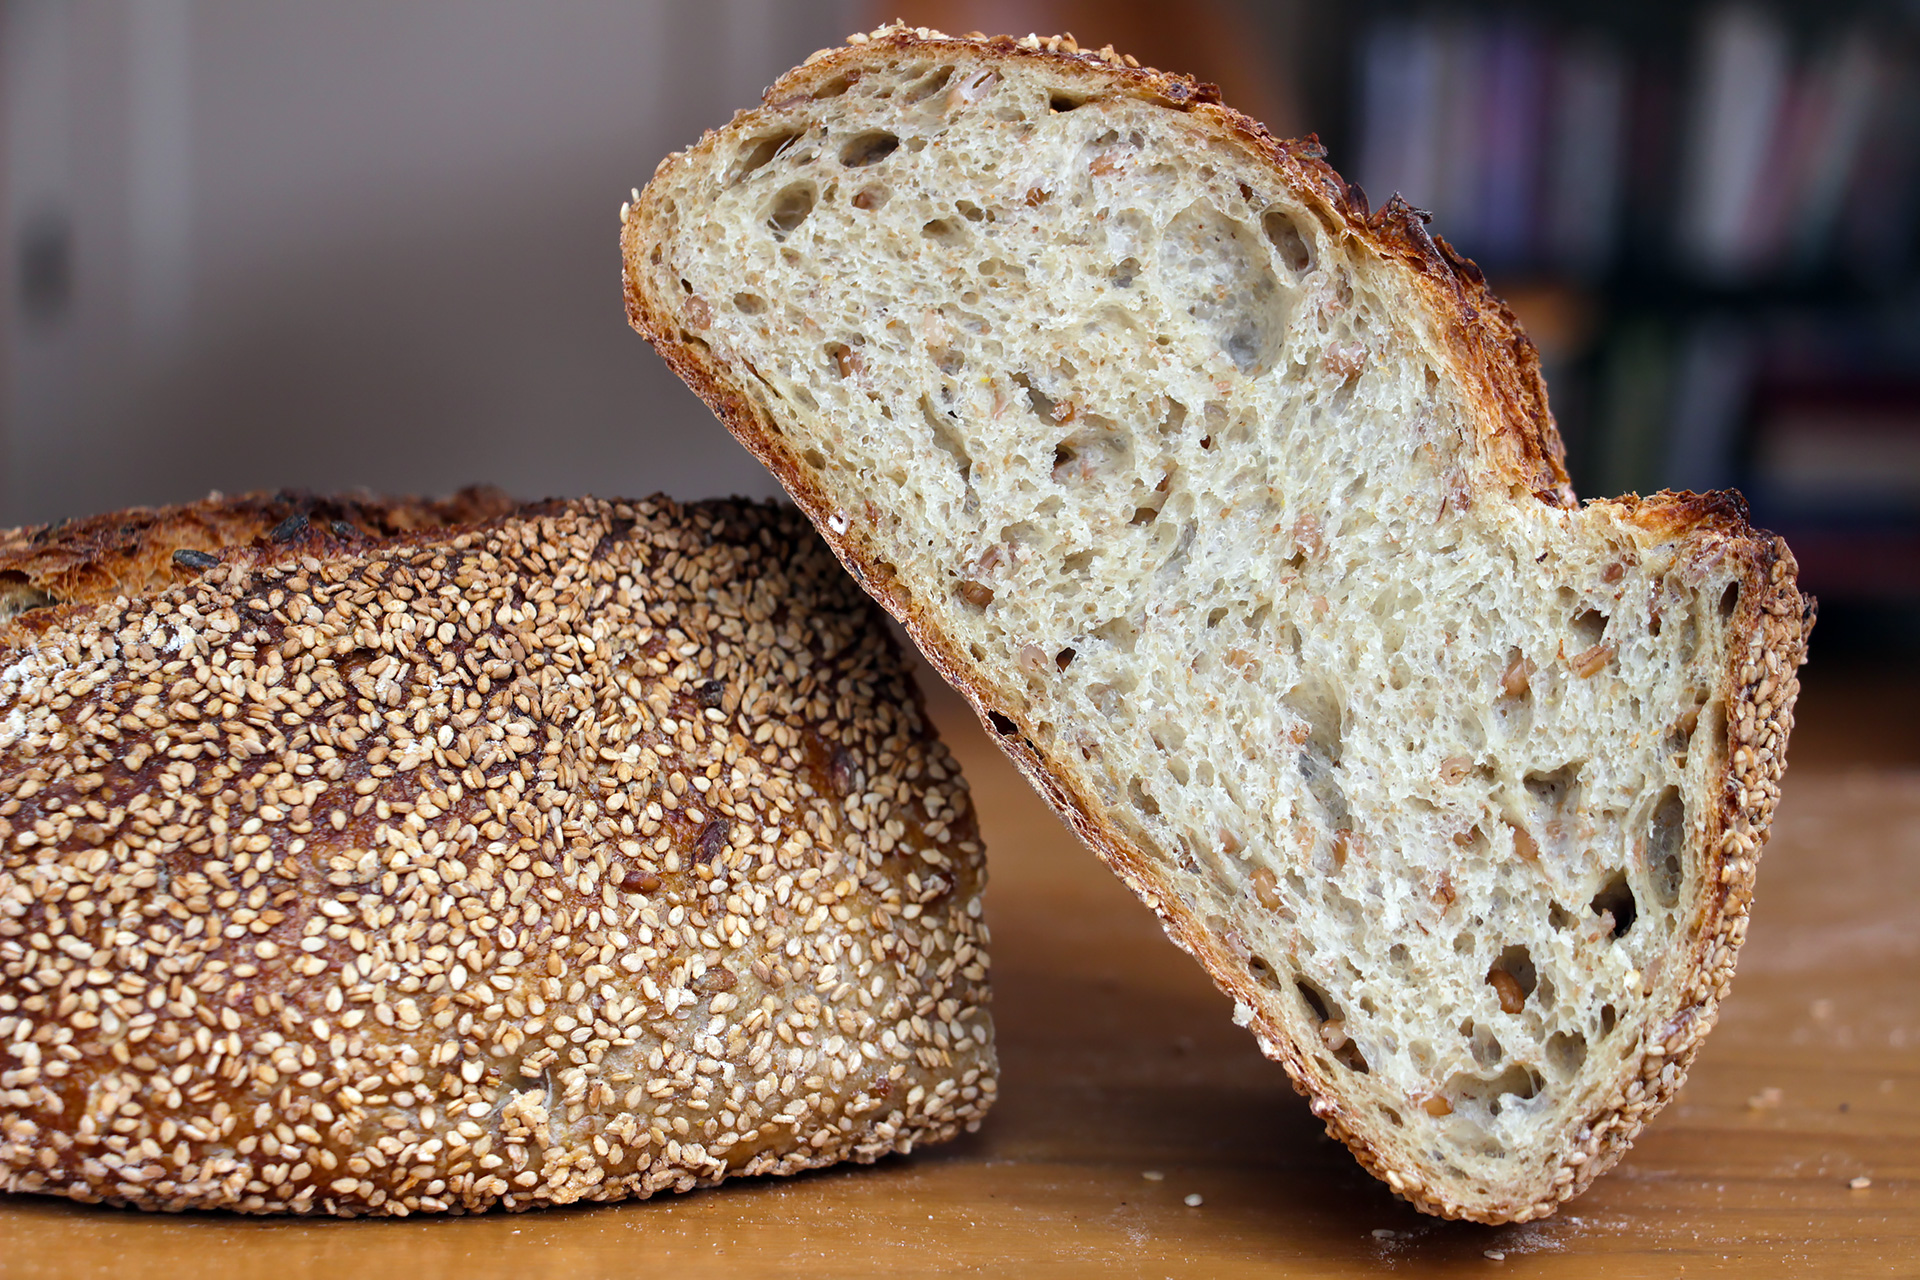 Firebrand's Sprouted Rye Batard